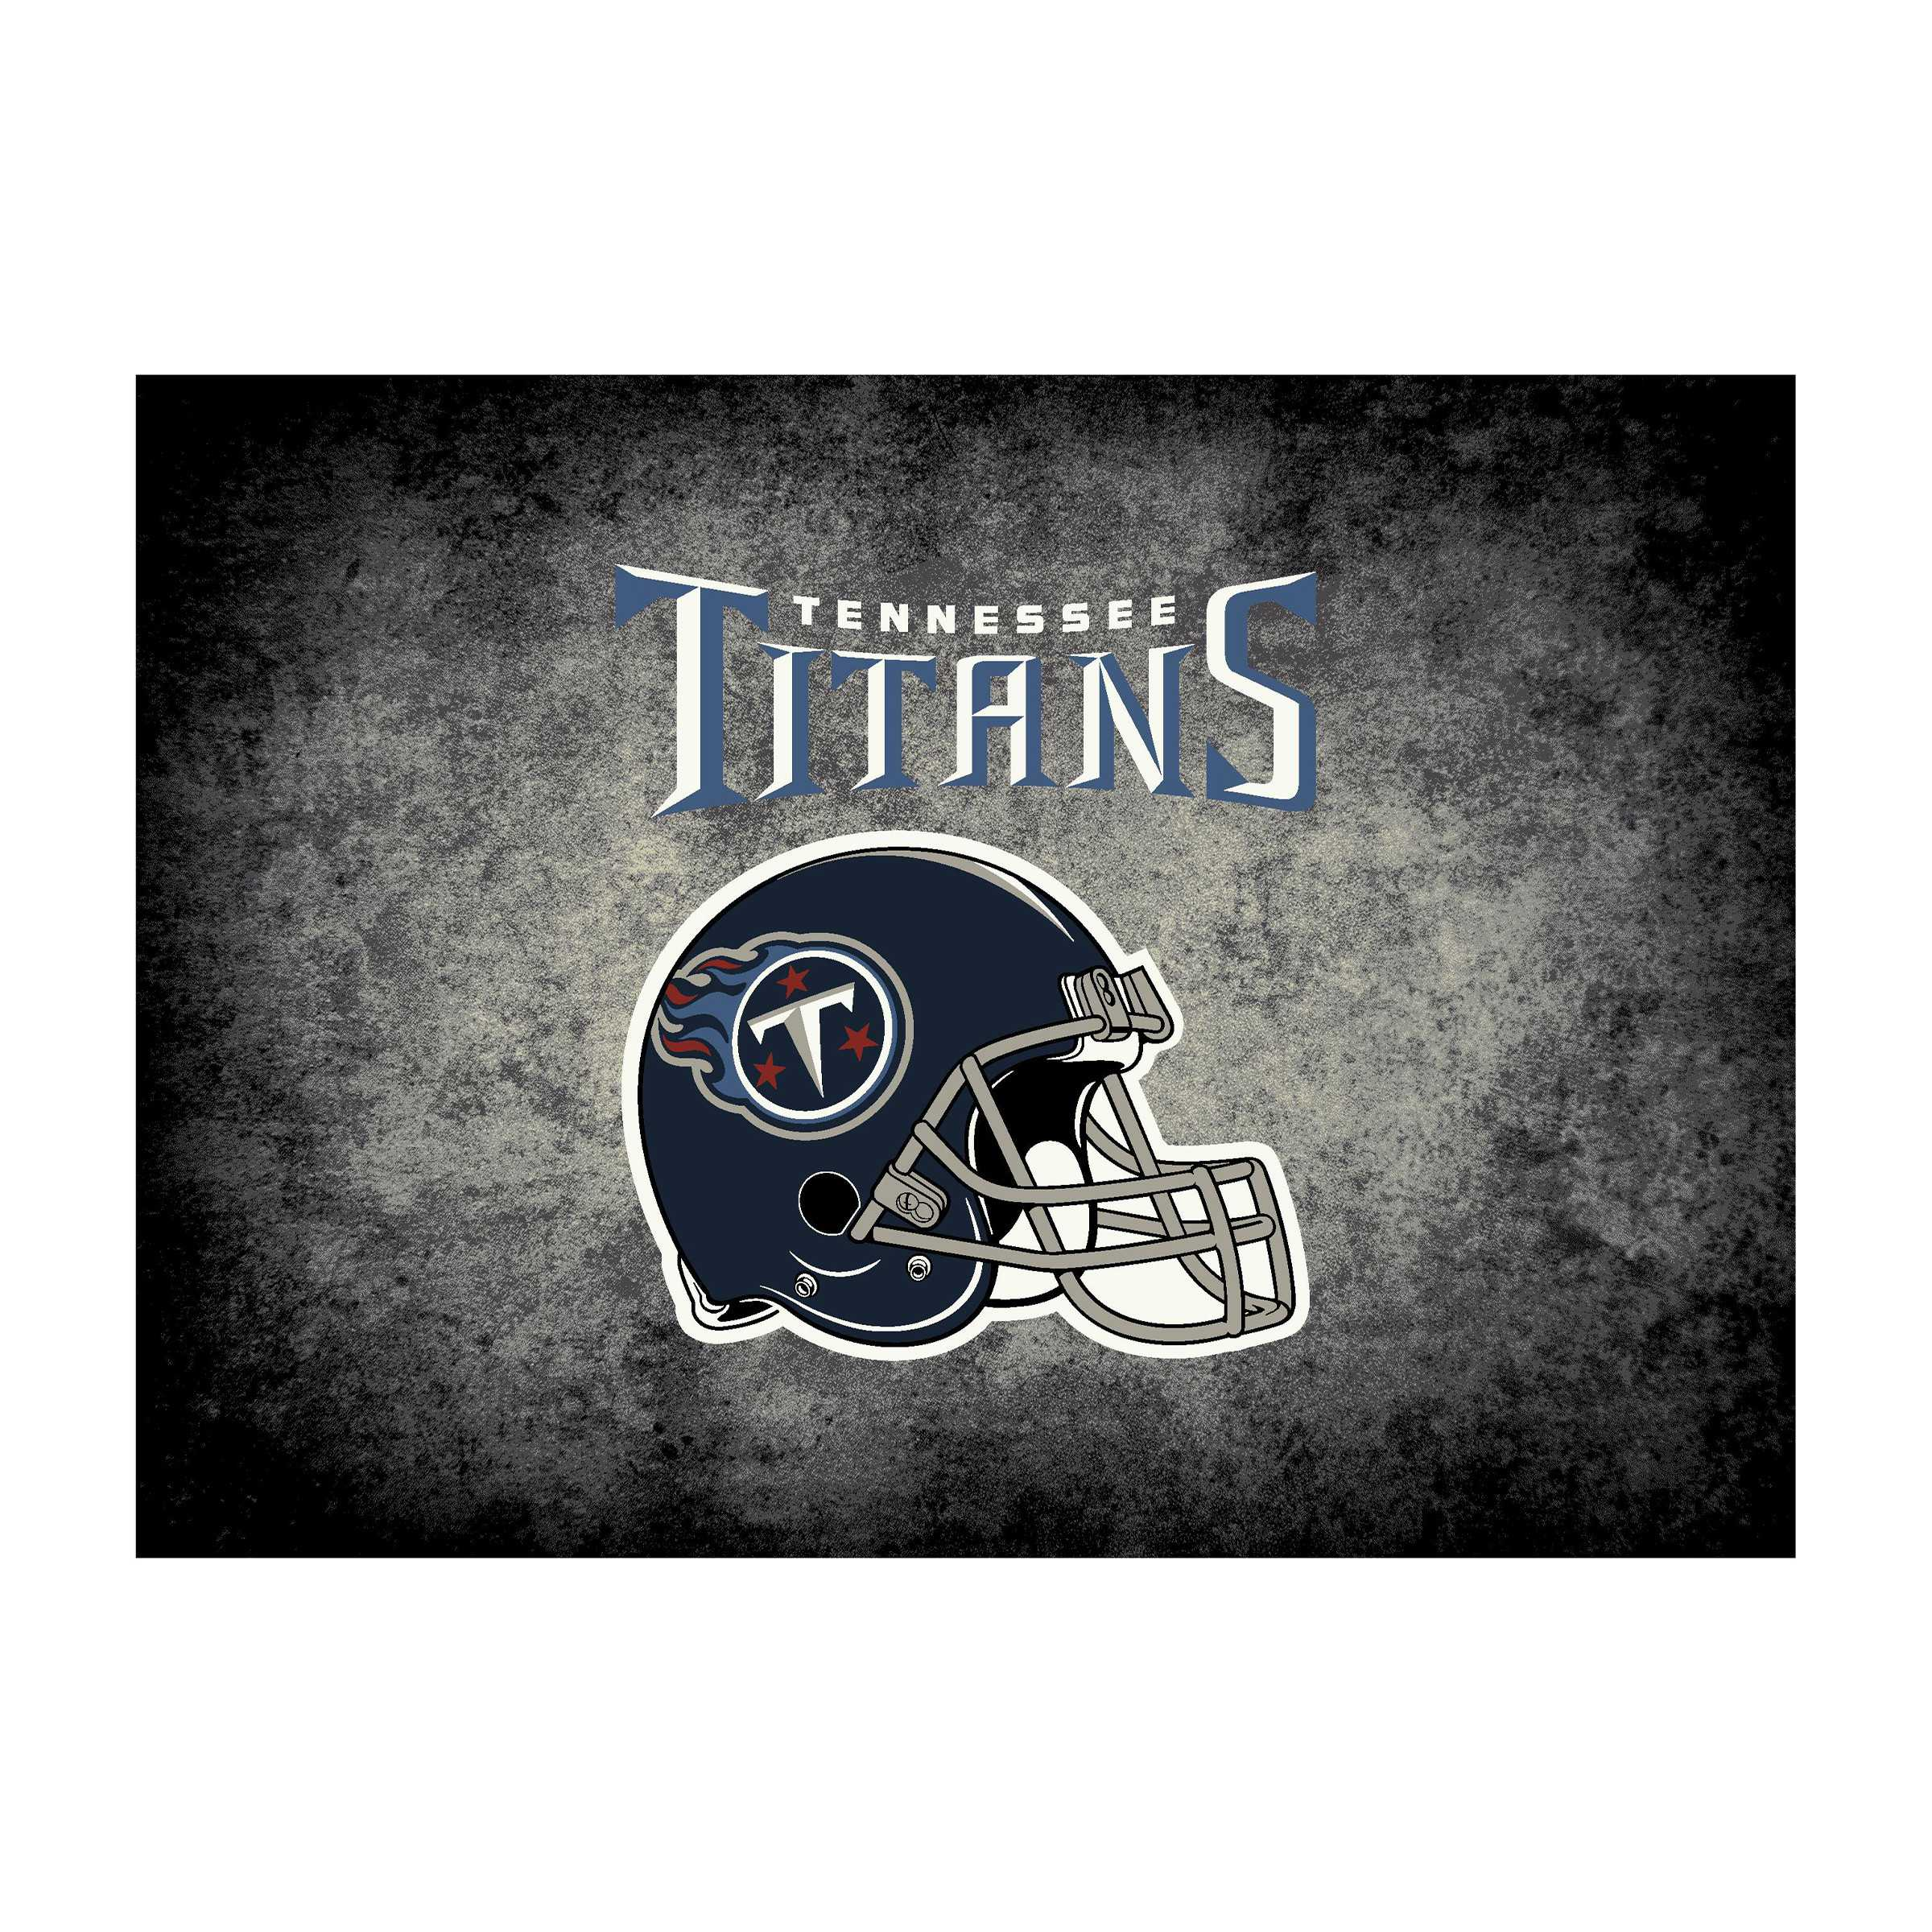 TENNESSEE TITANS 6X8 DISTRESSED RUG